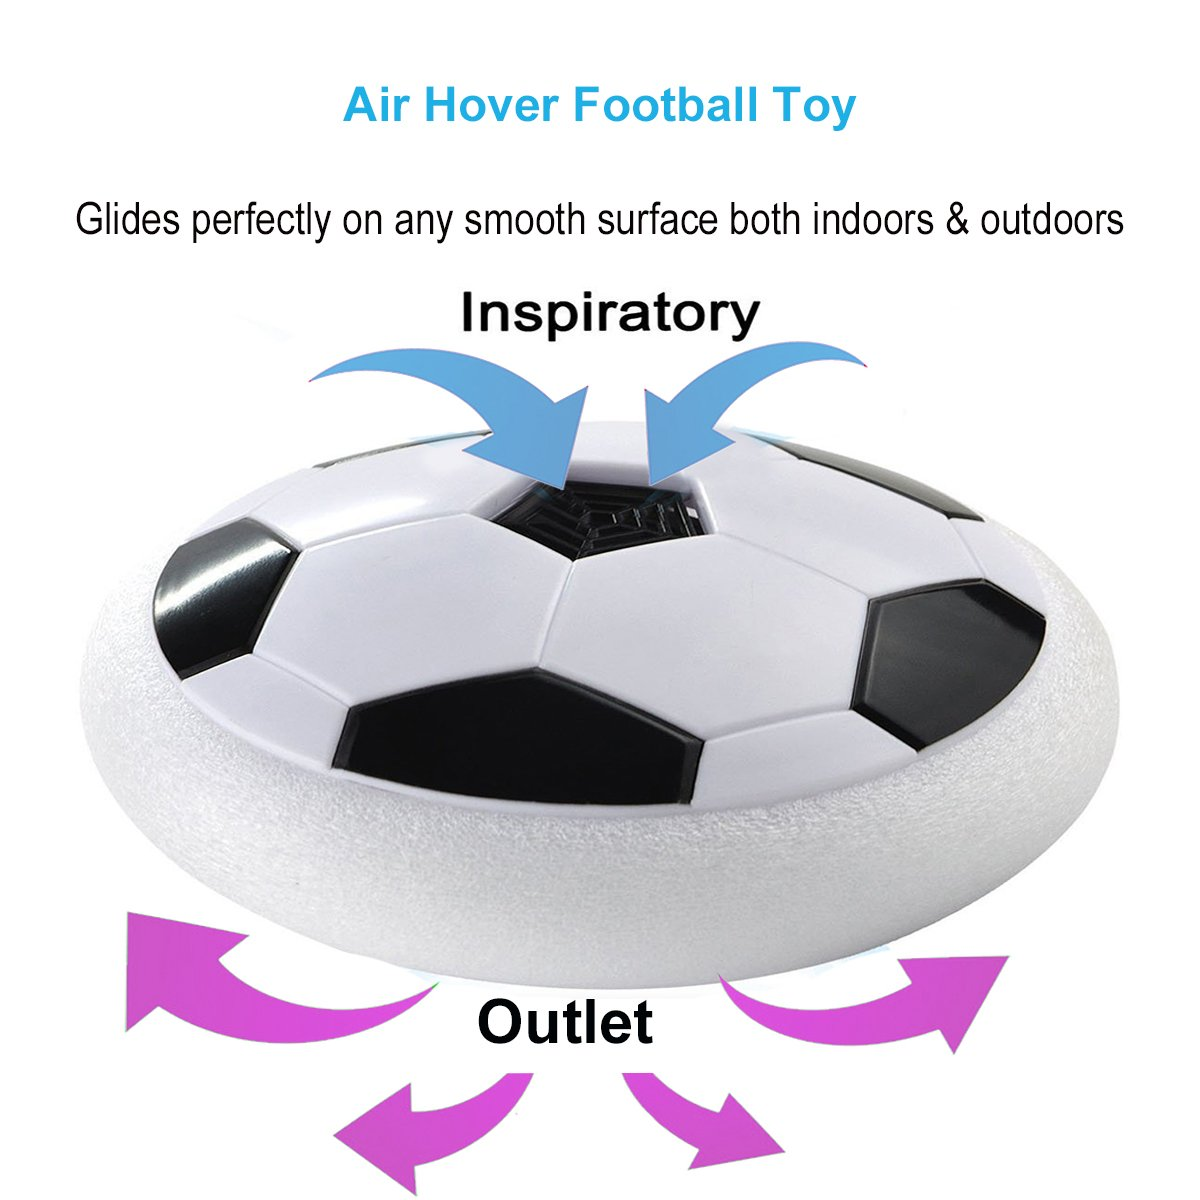 MICKYU Amazing Floating Disk Air Hover Ball Toys Size 4 Boys Girls Kids Indoor Outdoor Sport Soccer Training Football Toy Board Games with Foam Bumpers and LED Lights